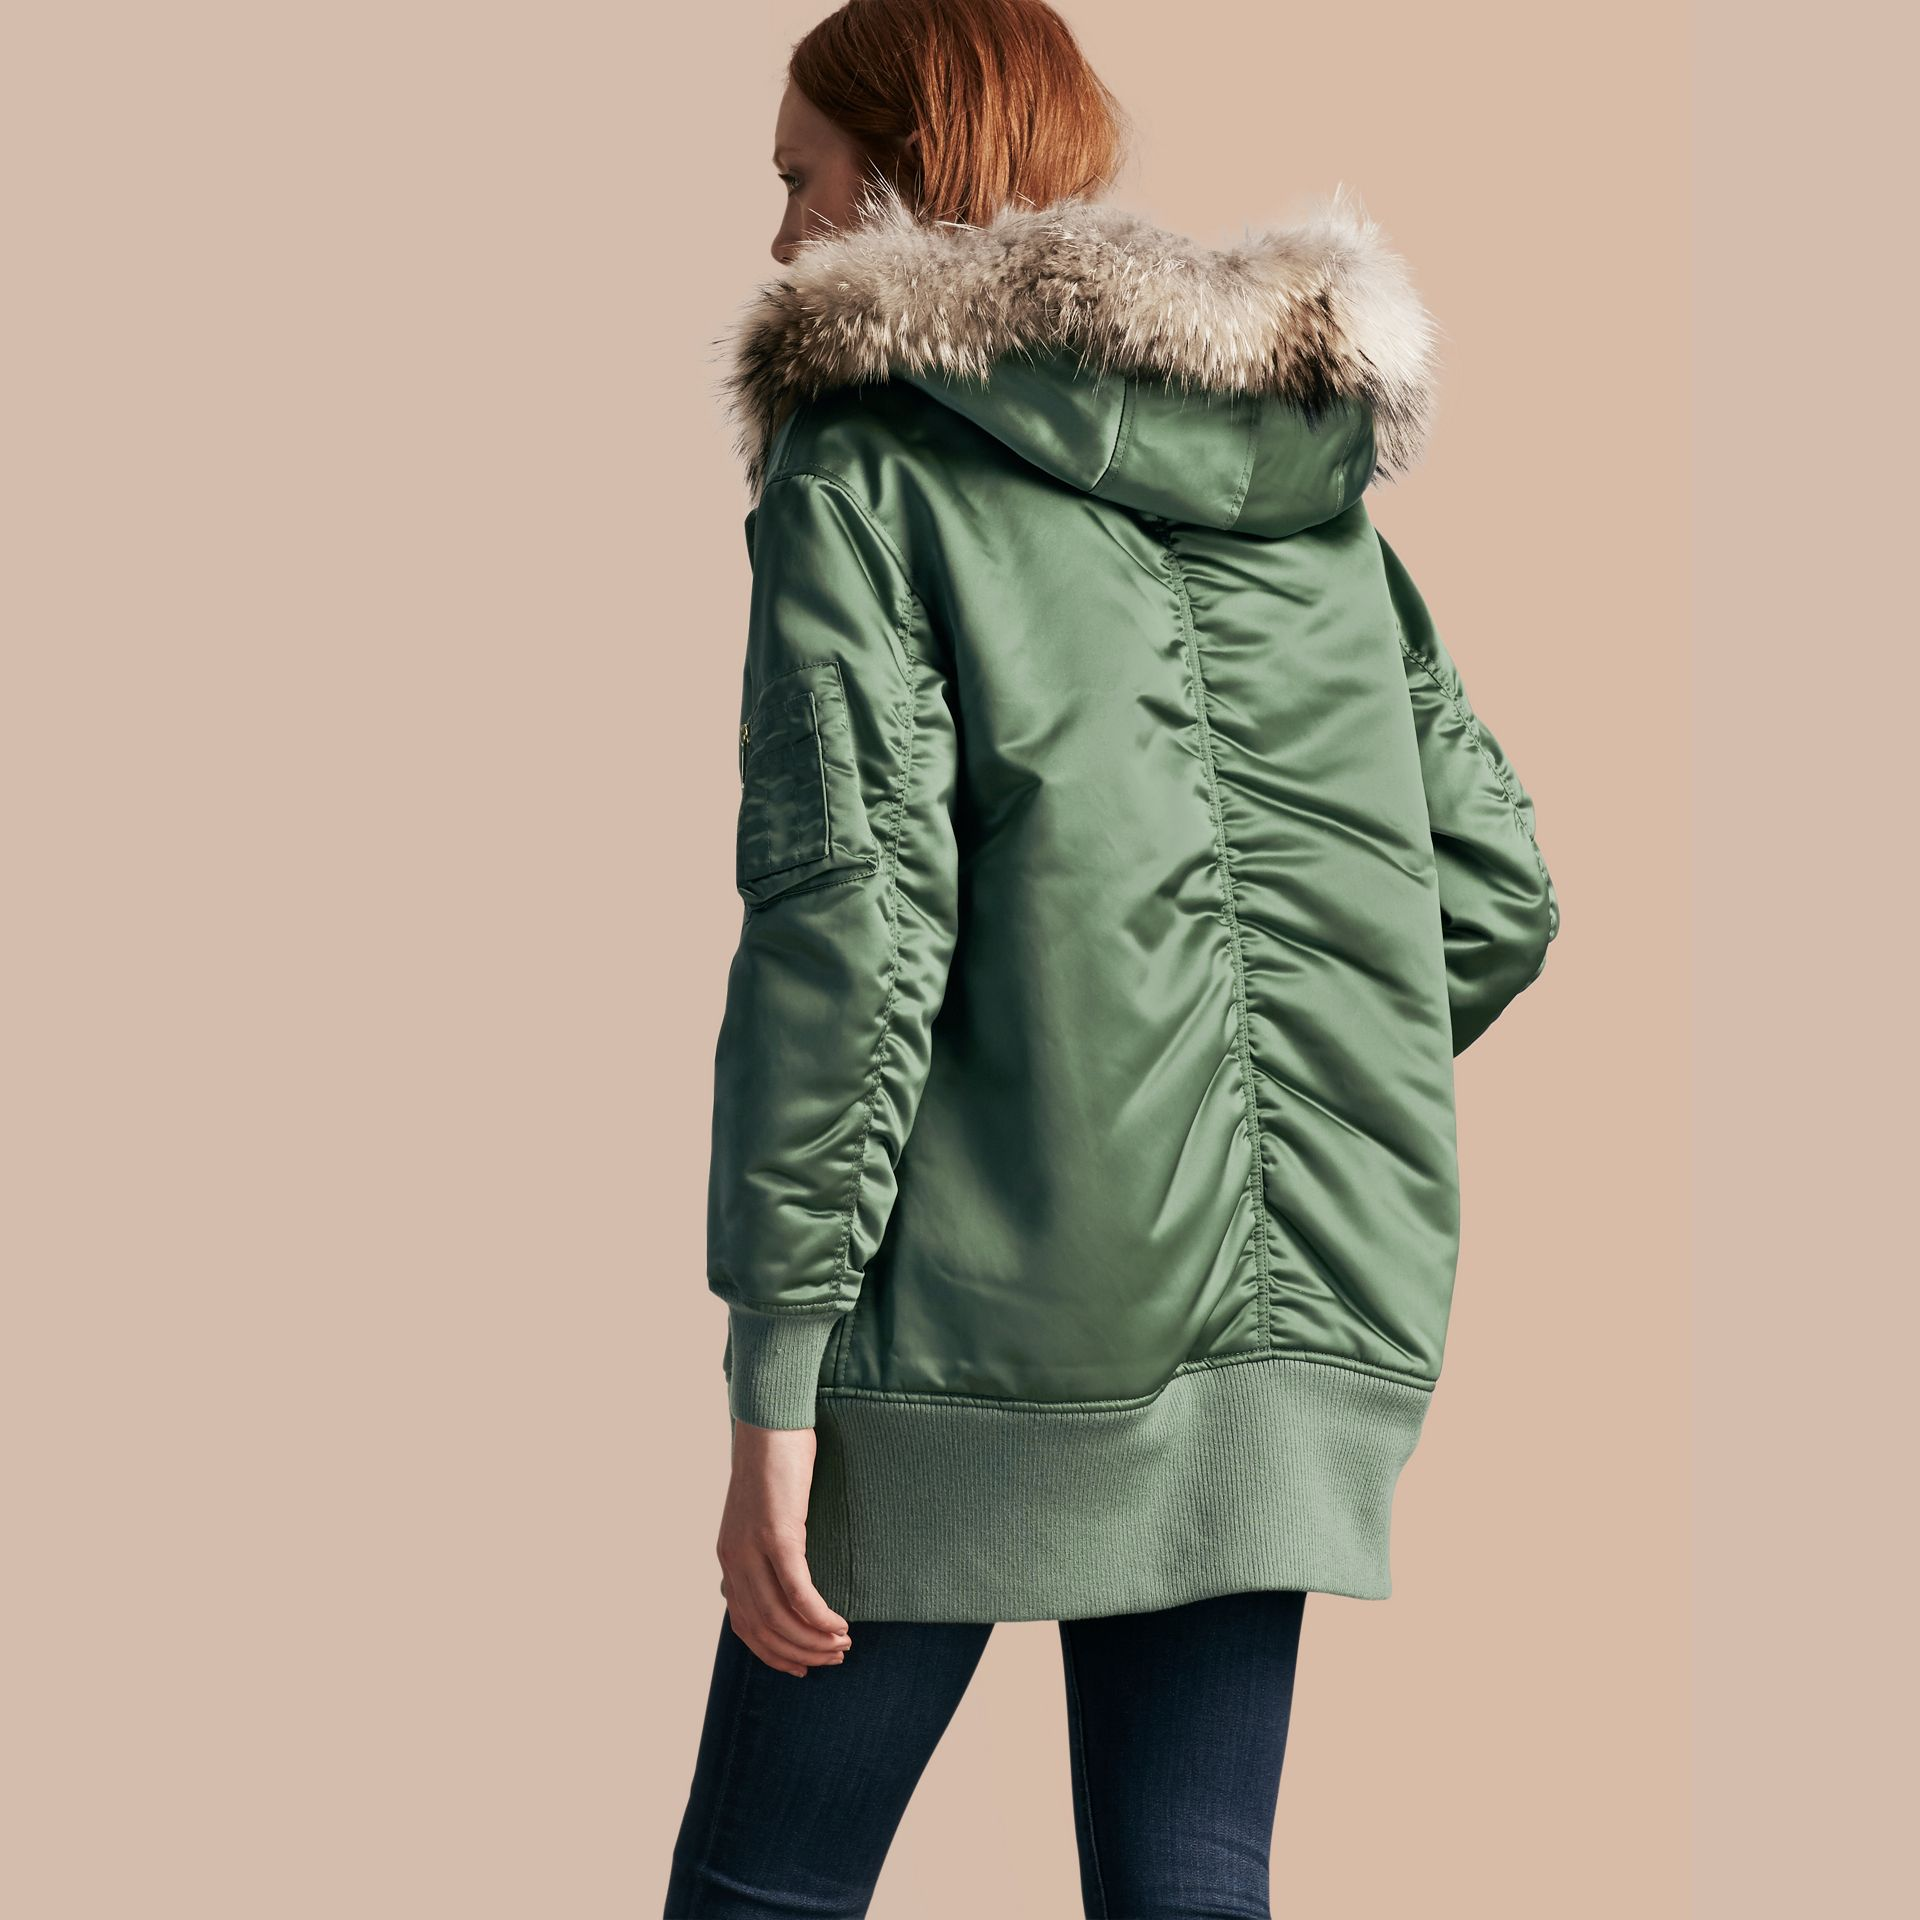 Eucalyptus green Long-line Satin Bomber Jacket with Fur-trimmed Hood Eucalyptus Green - gallery image 3